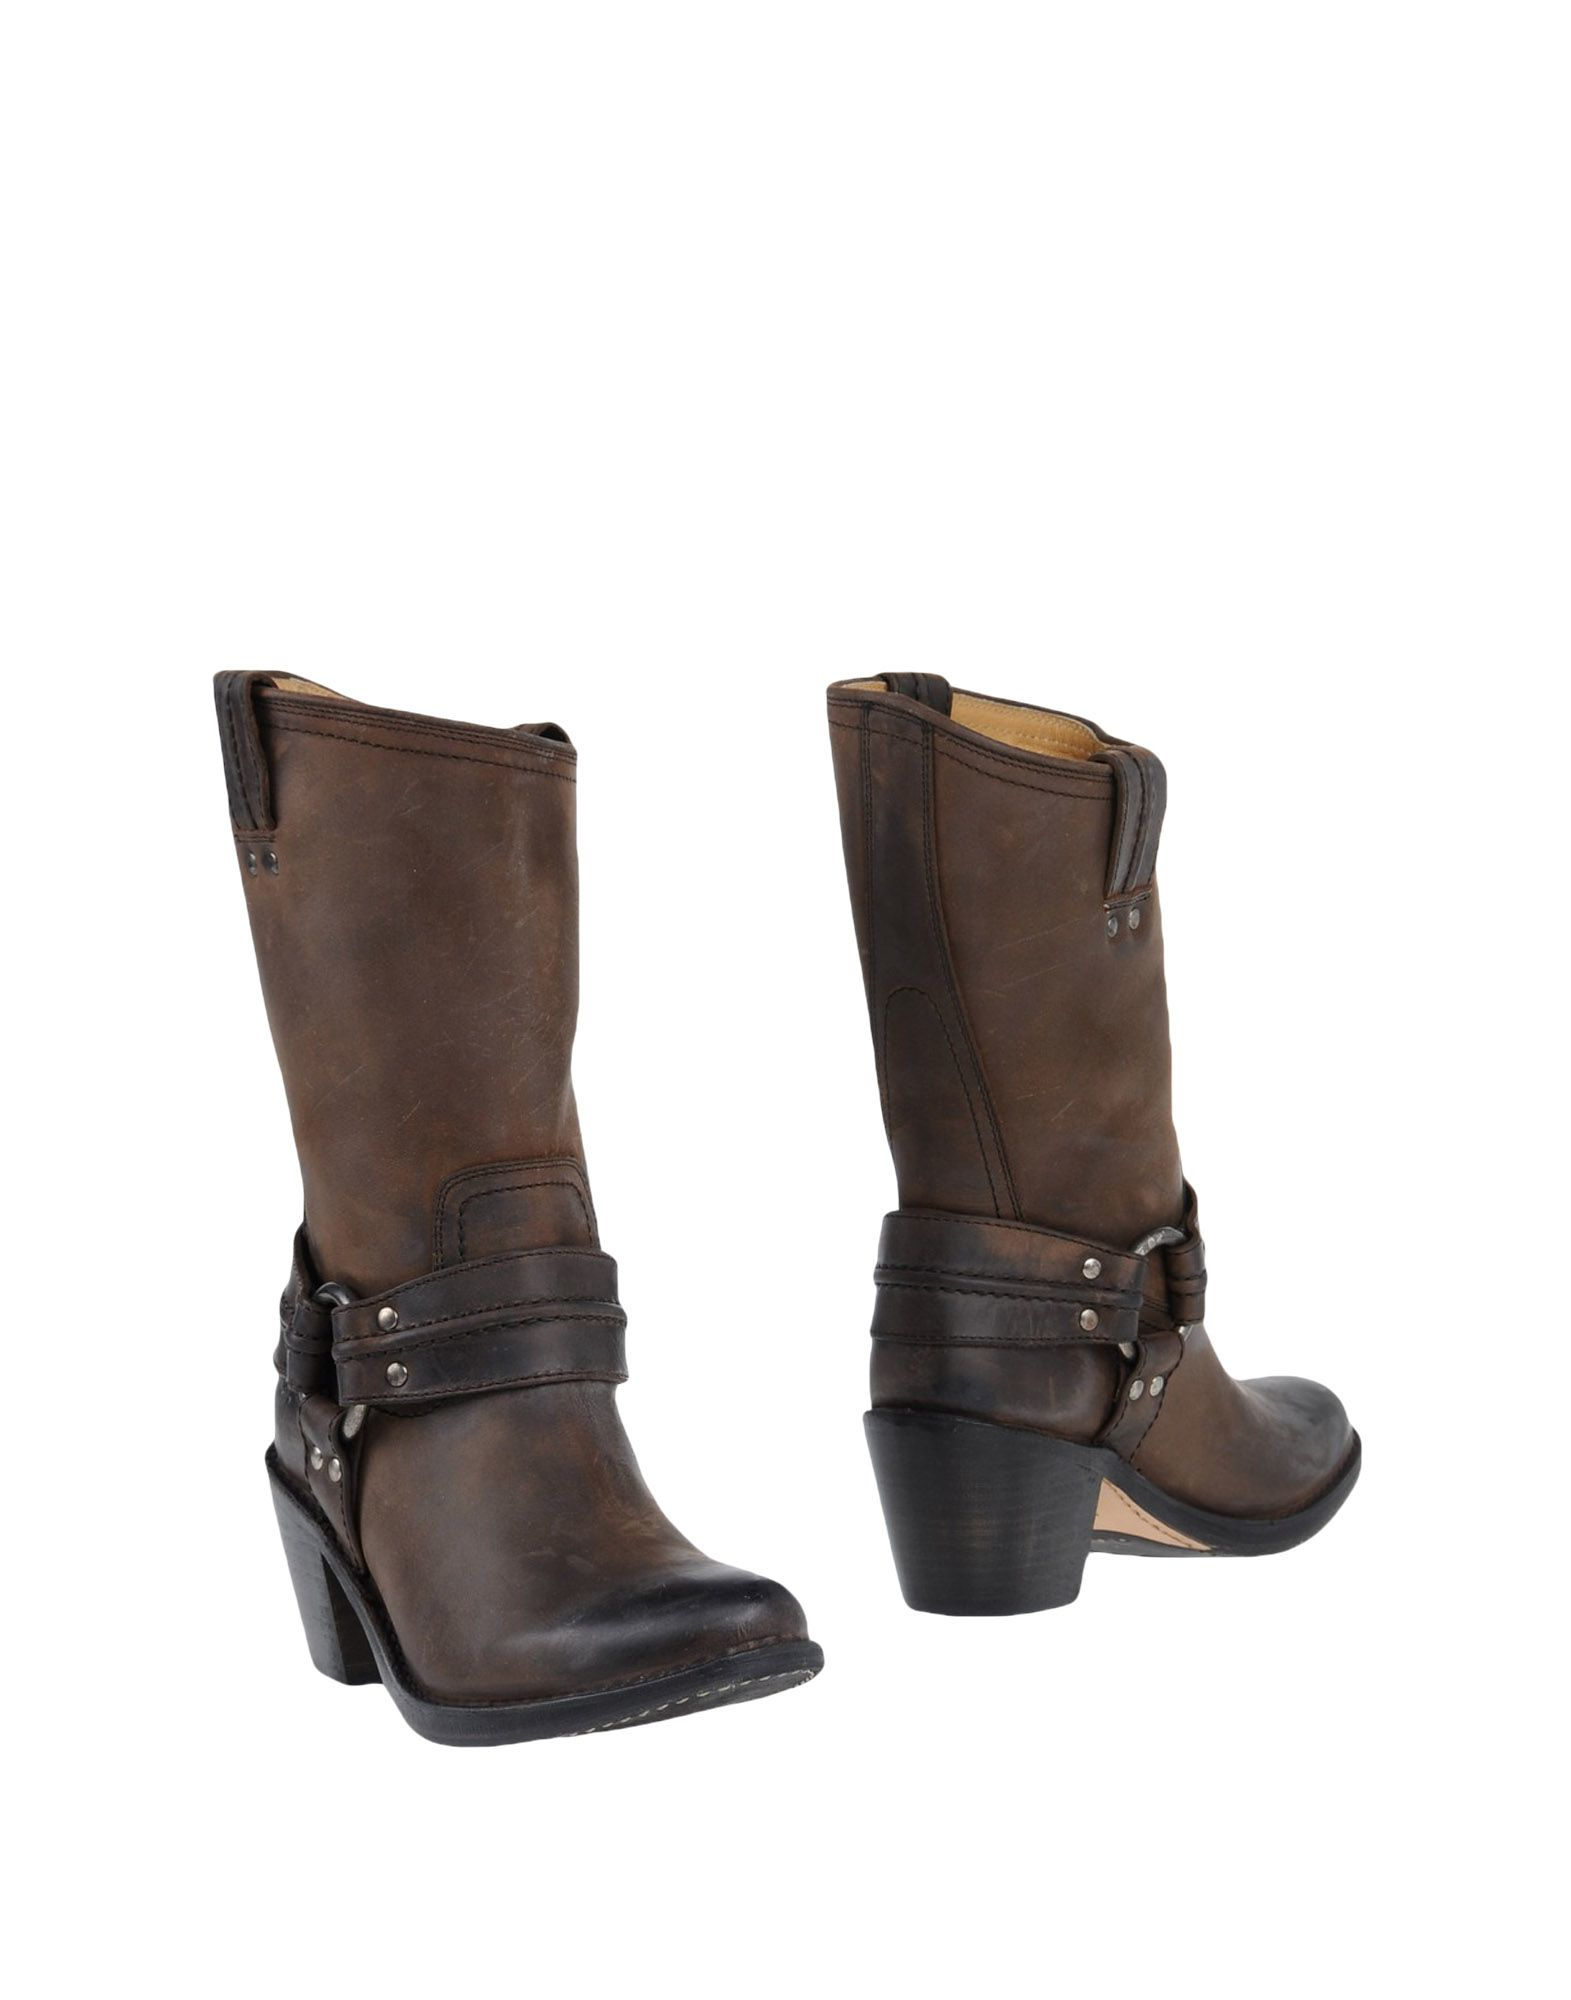 Awesome Frye Ankle Boots In Brown Khaki  Lyst